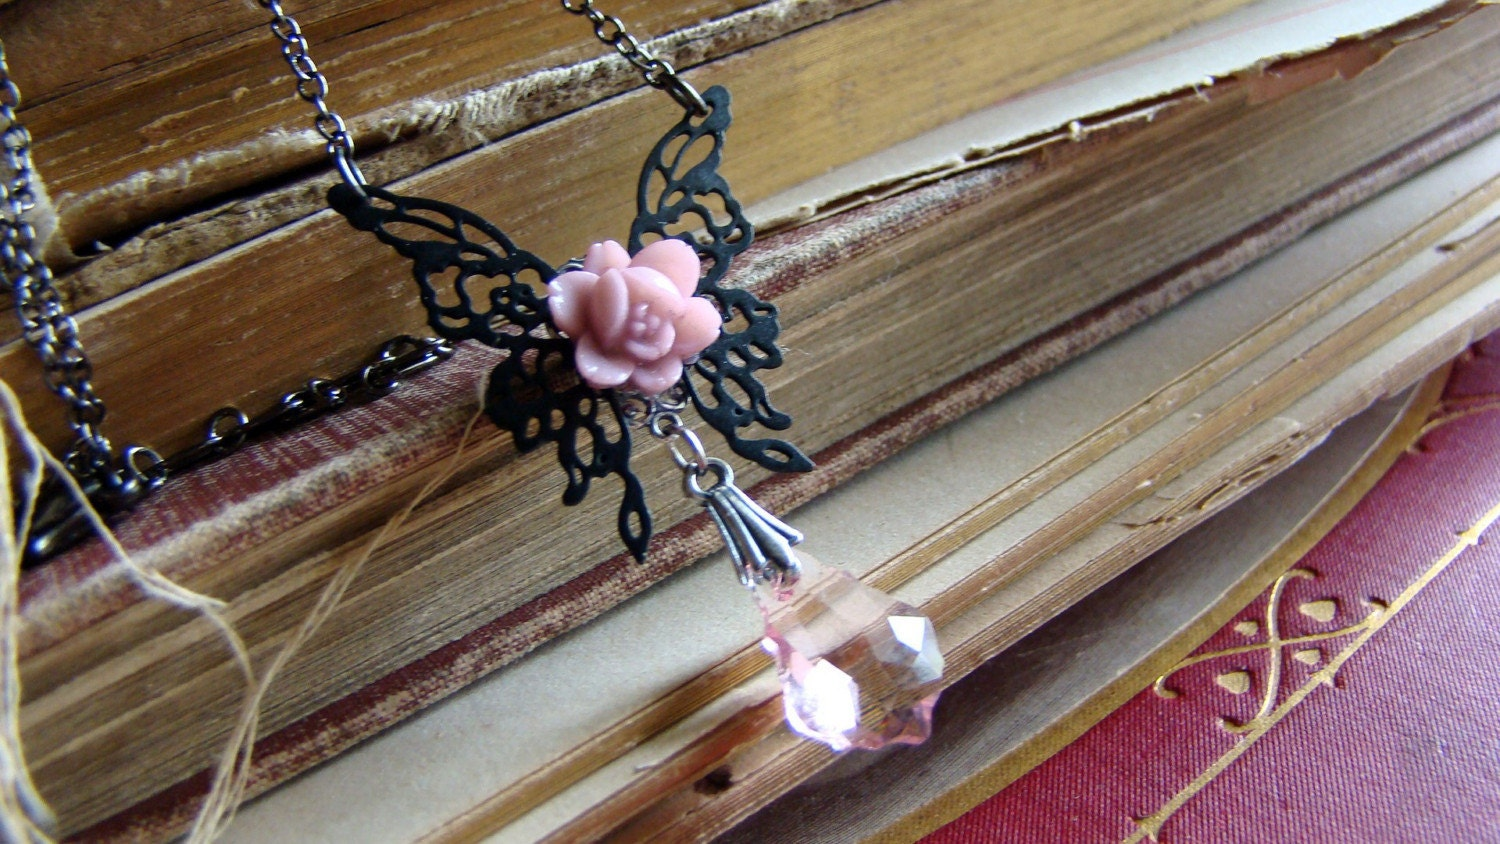 Trixa the Pink Fairy - Filigree Butterlfy Wings, a Pink Colored Flower and Jewel Necklace